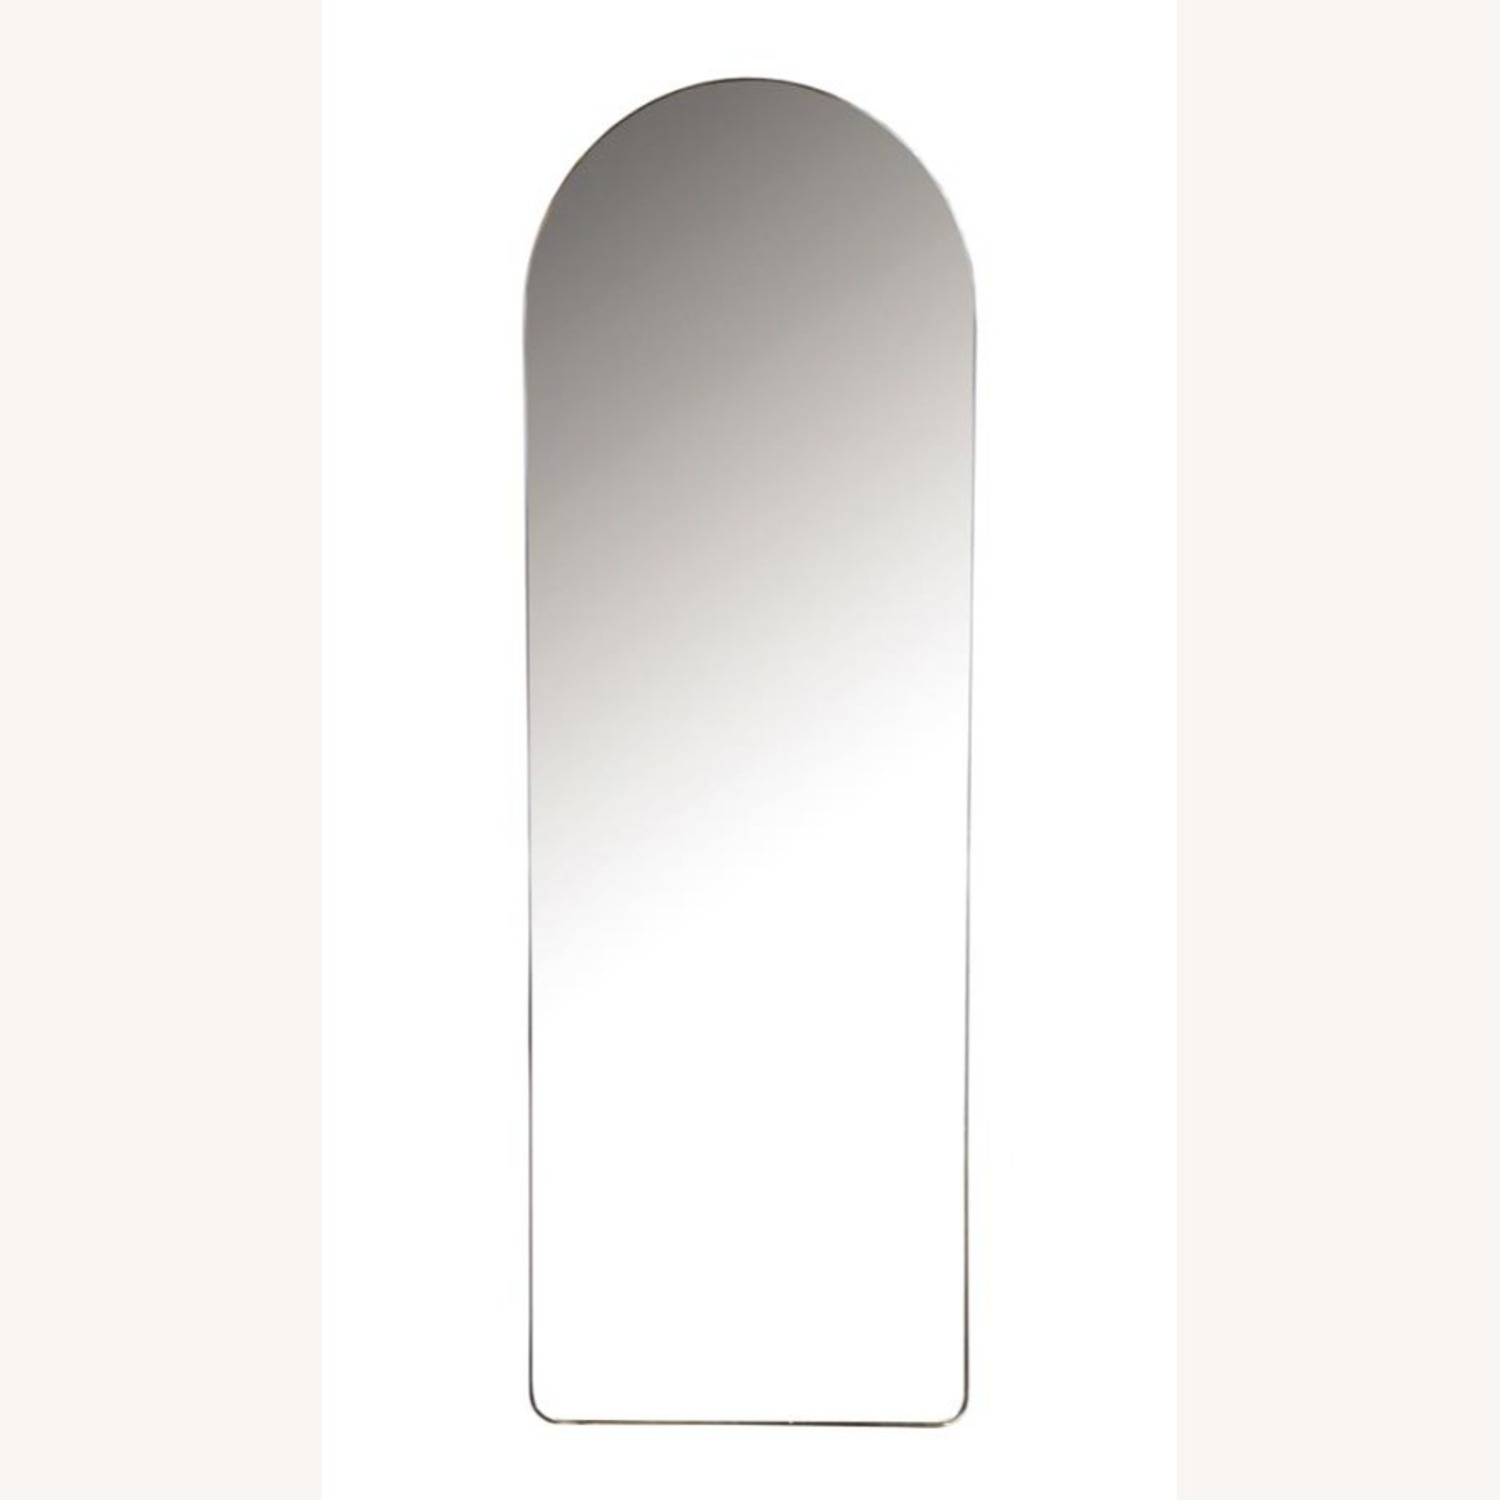 Wall Mirror In Black Metal Frame Finish - image-0